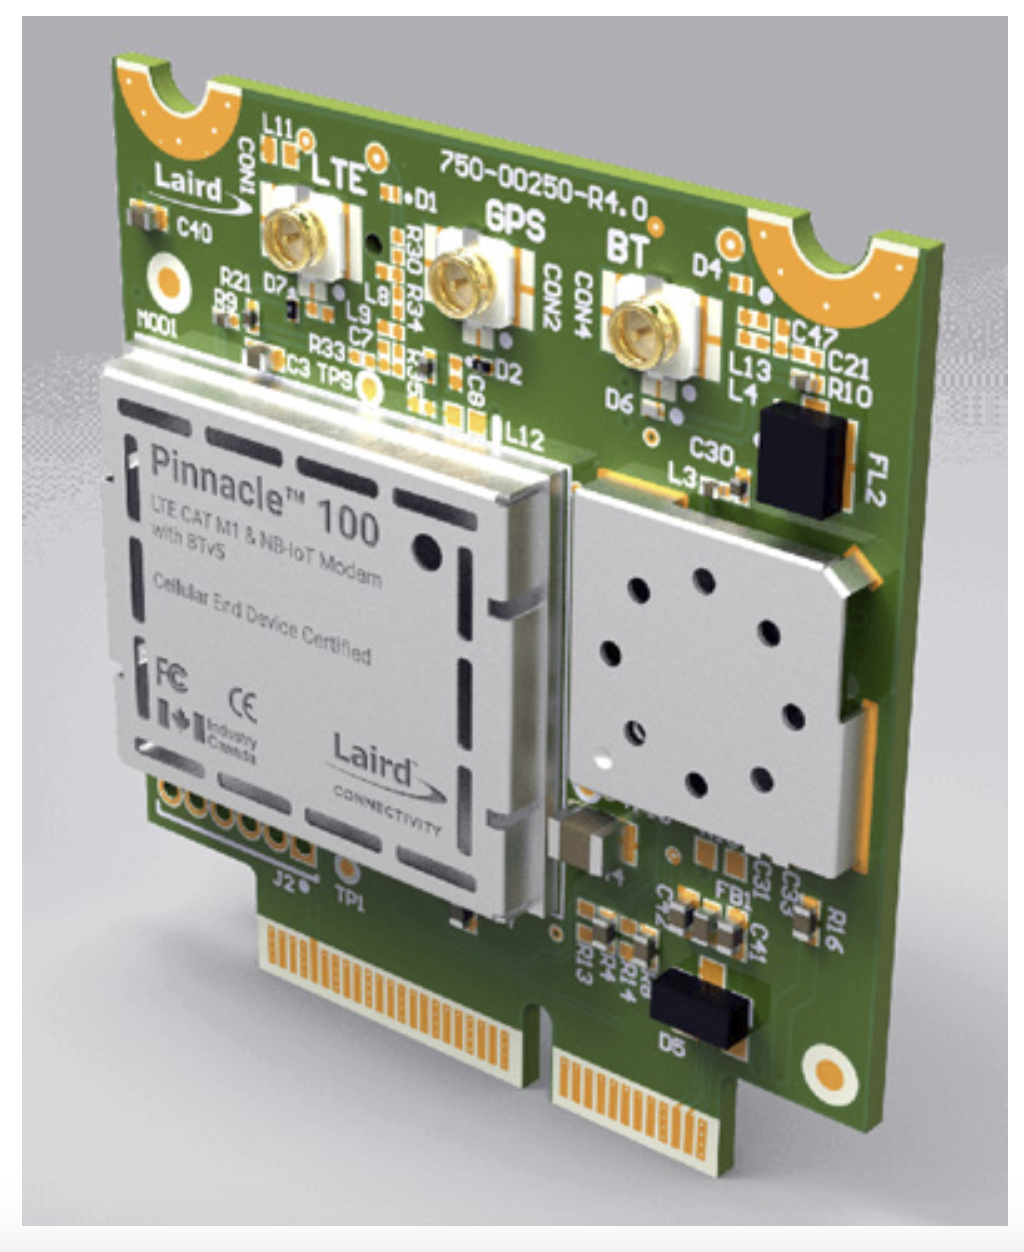 Laird modem combines Bluetooth 5, LTE-M and NB-IoT.